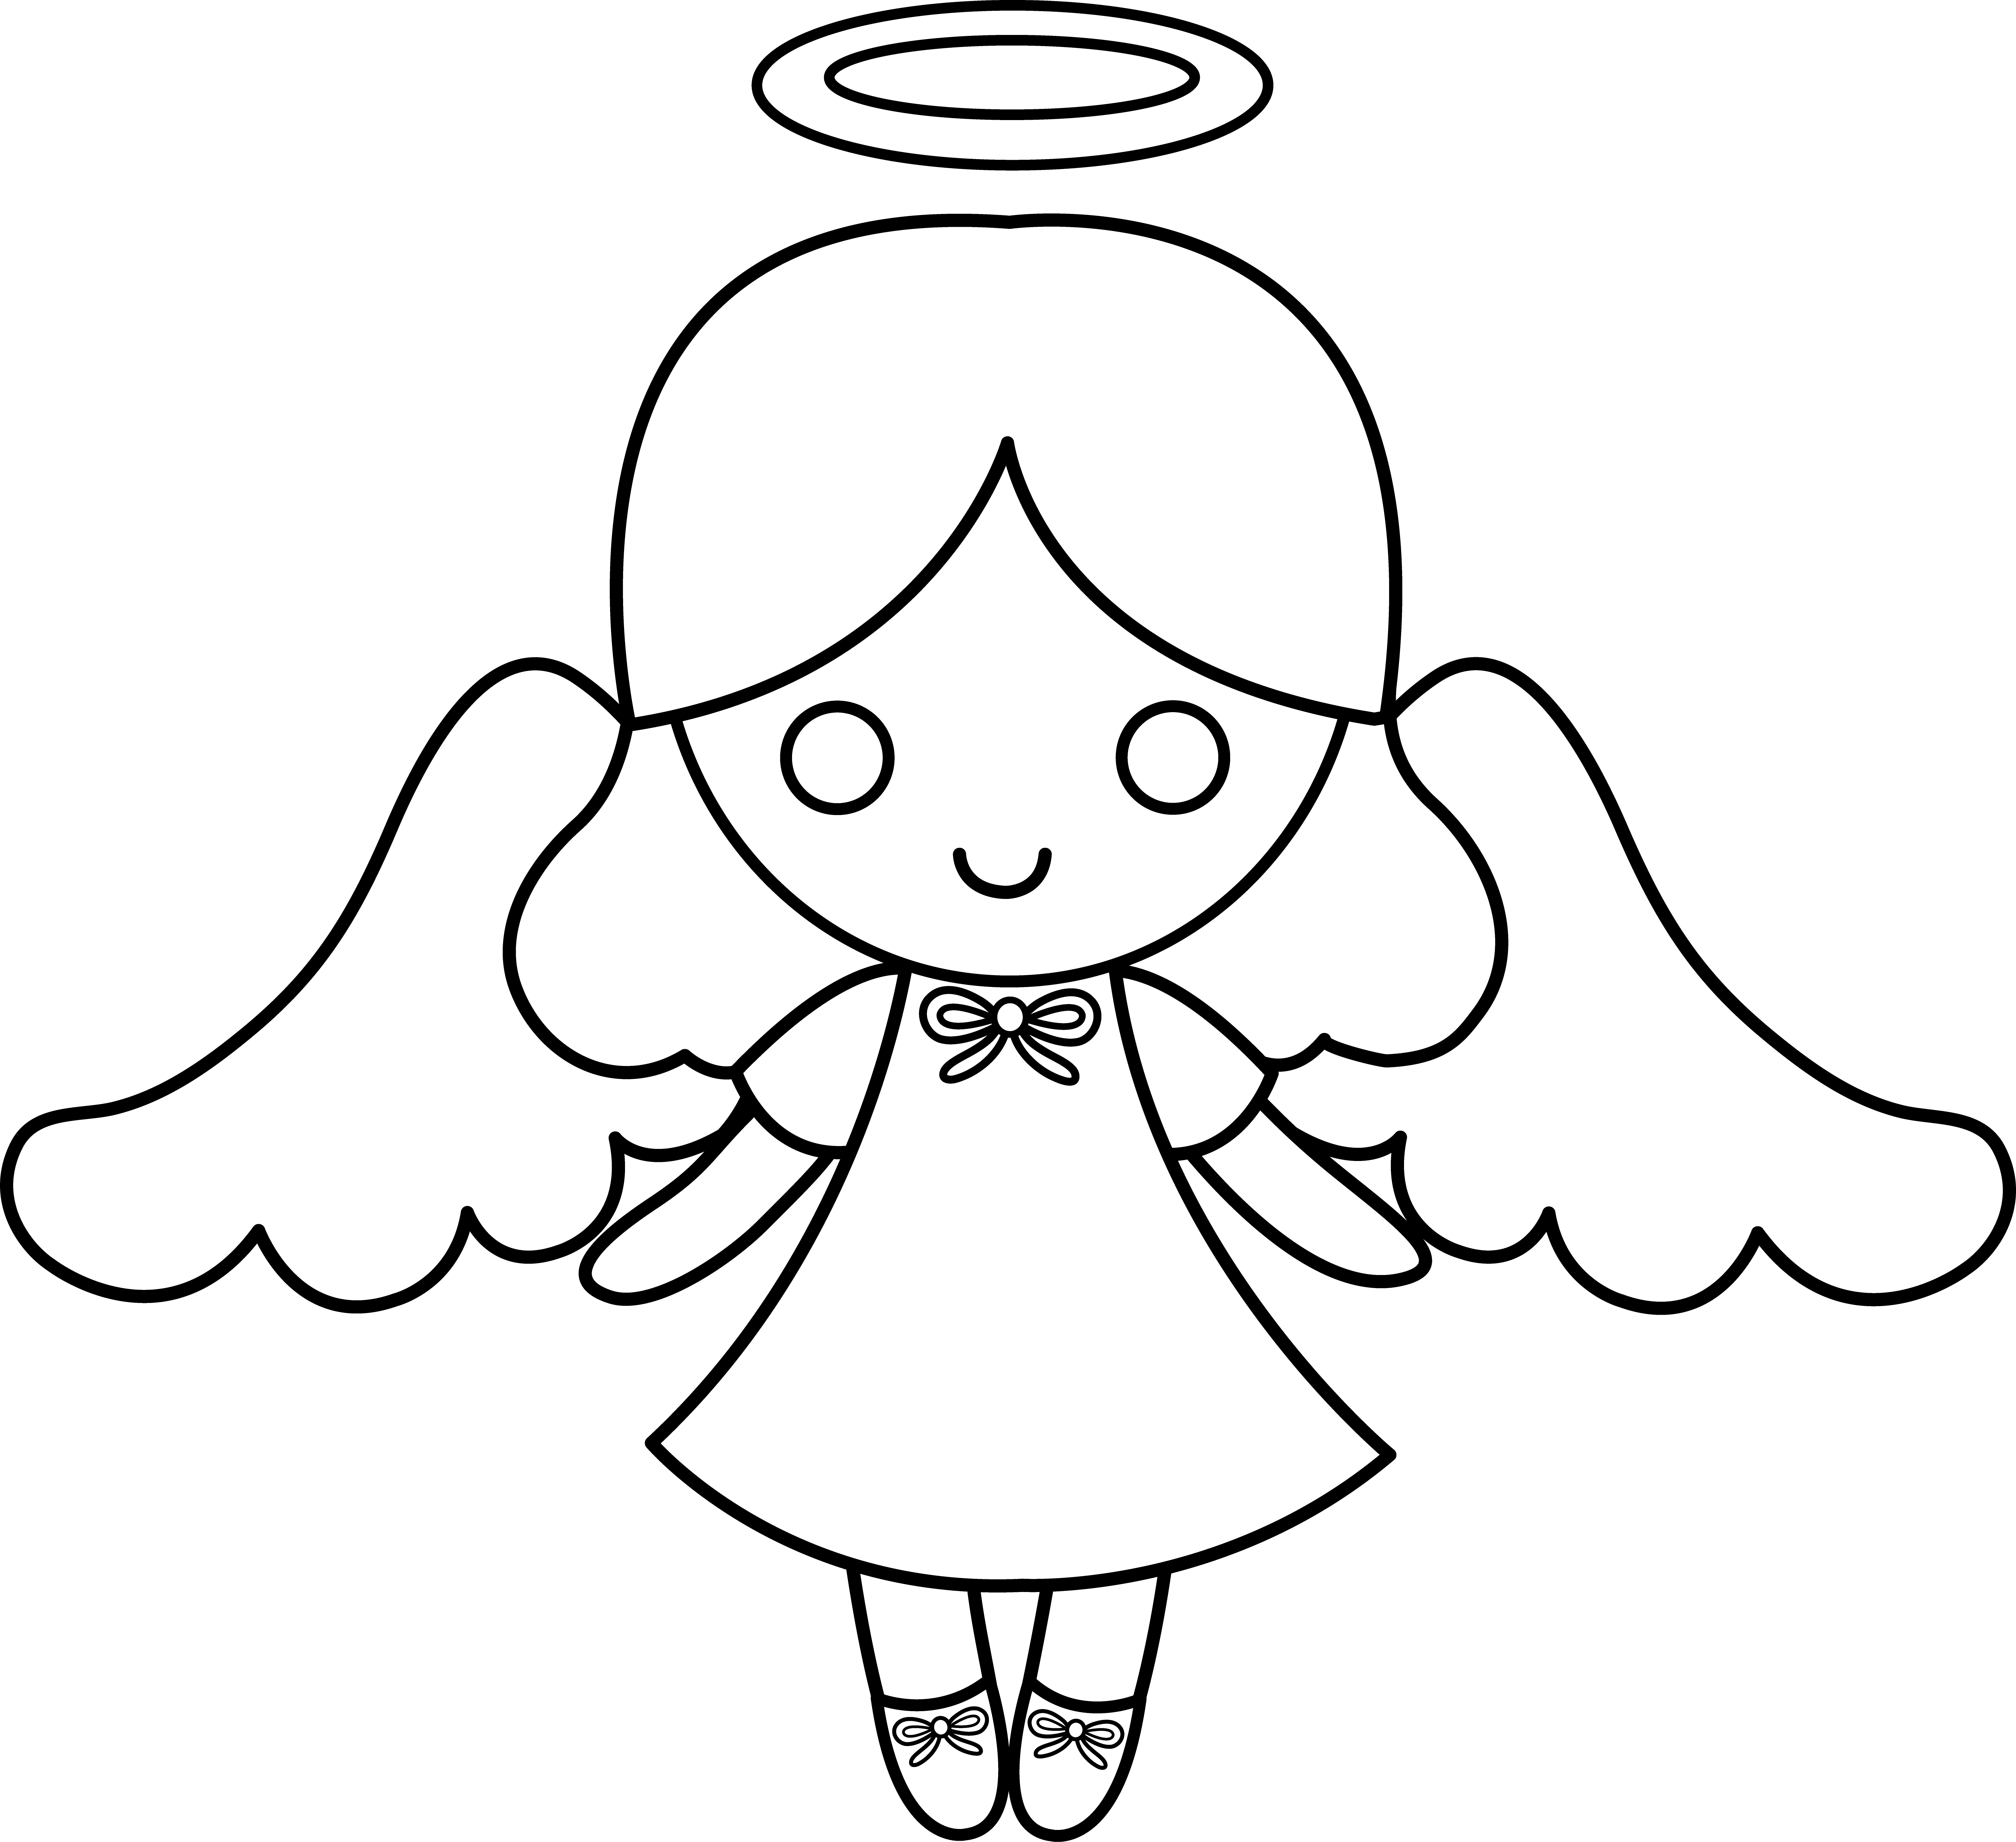 Wings clipart little angel Free Drawing White Black Clipart